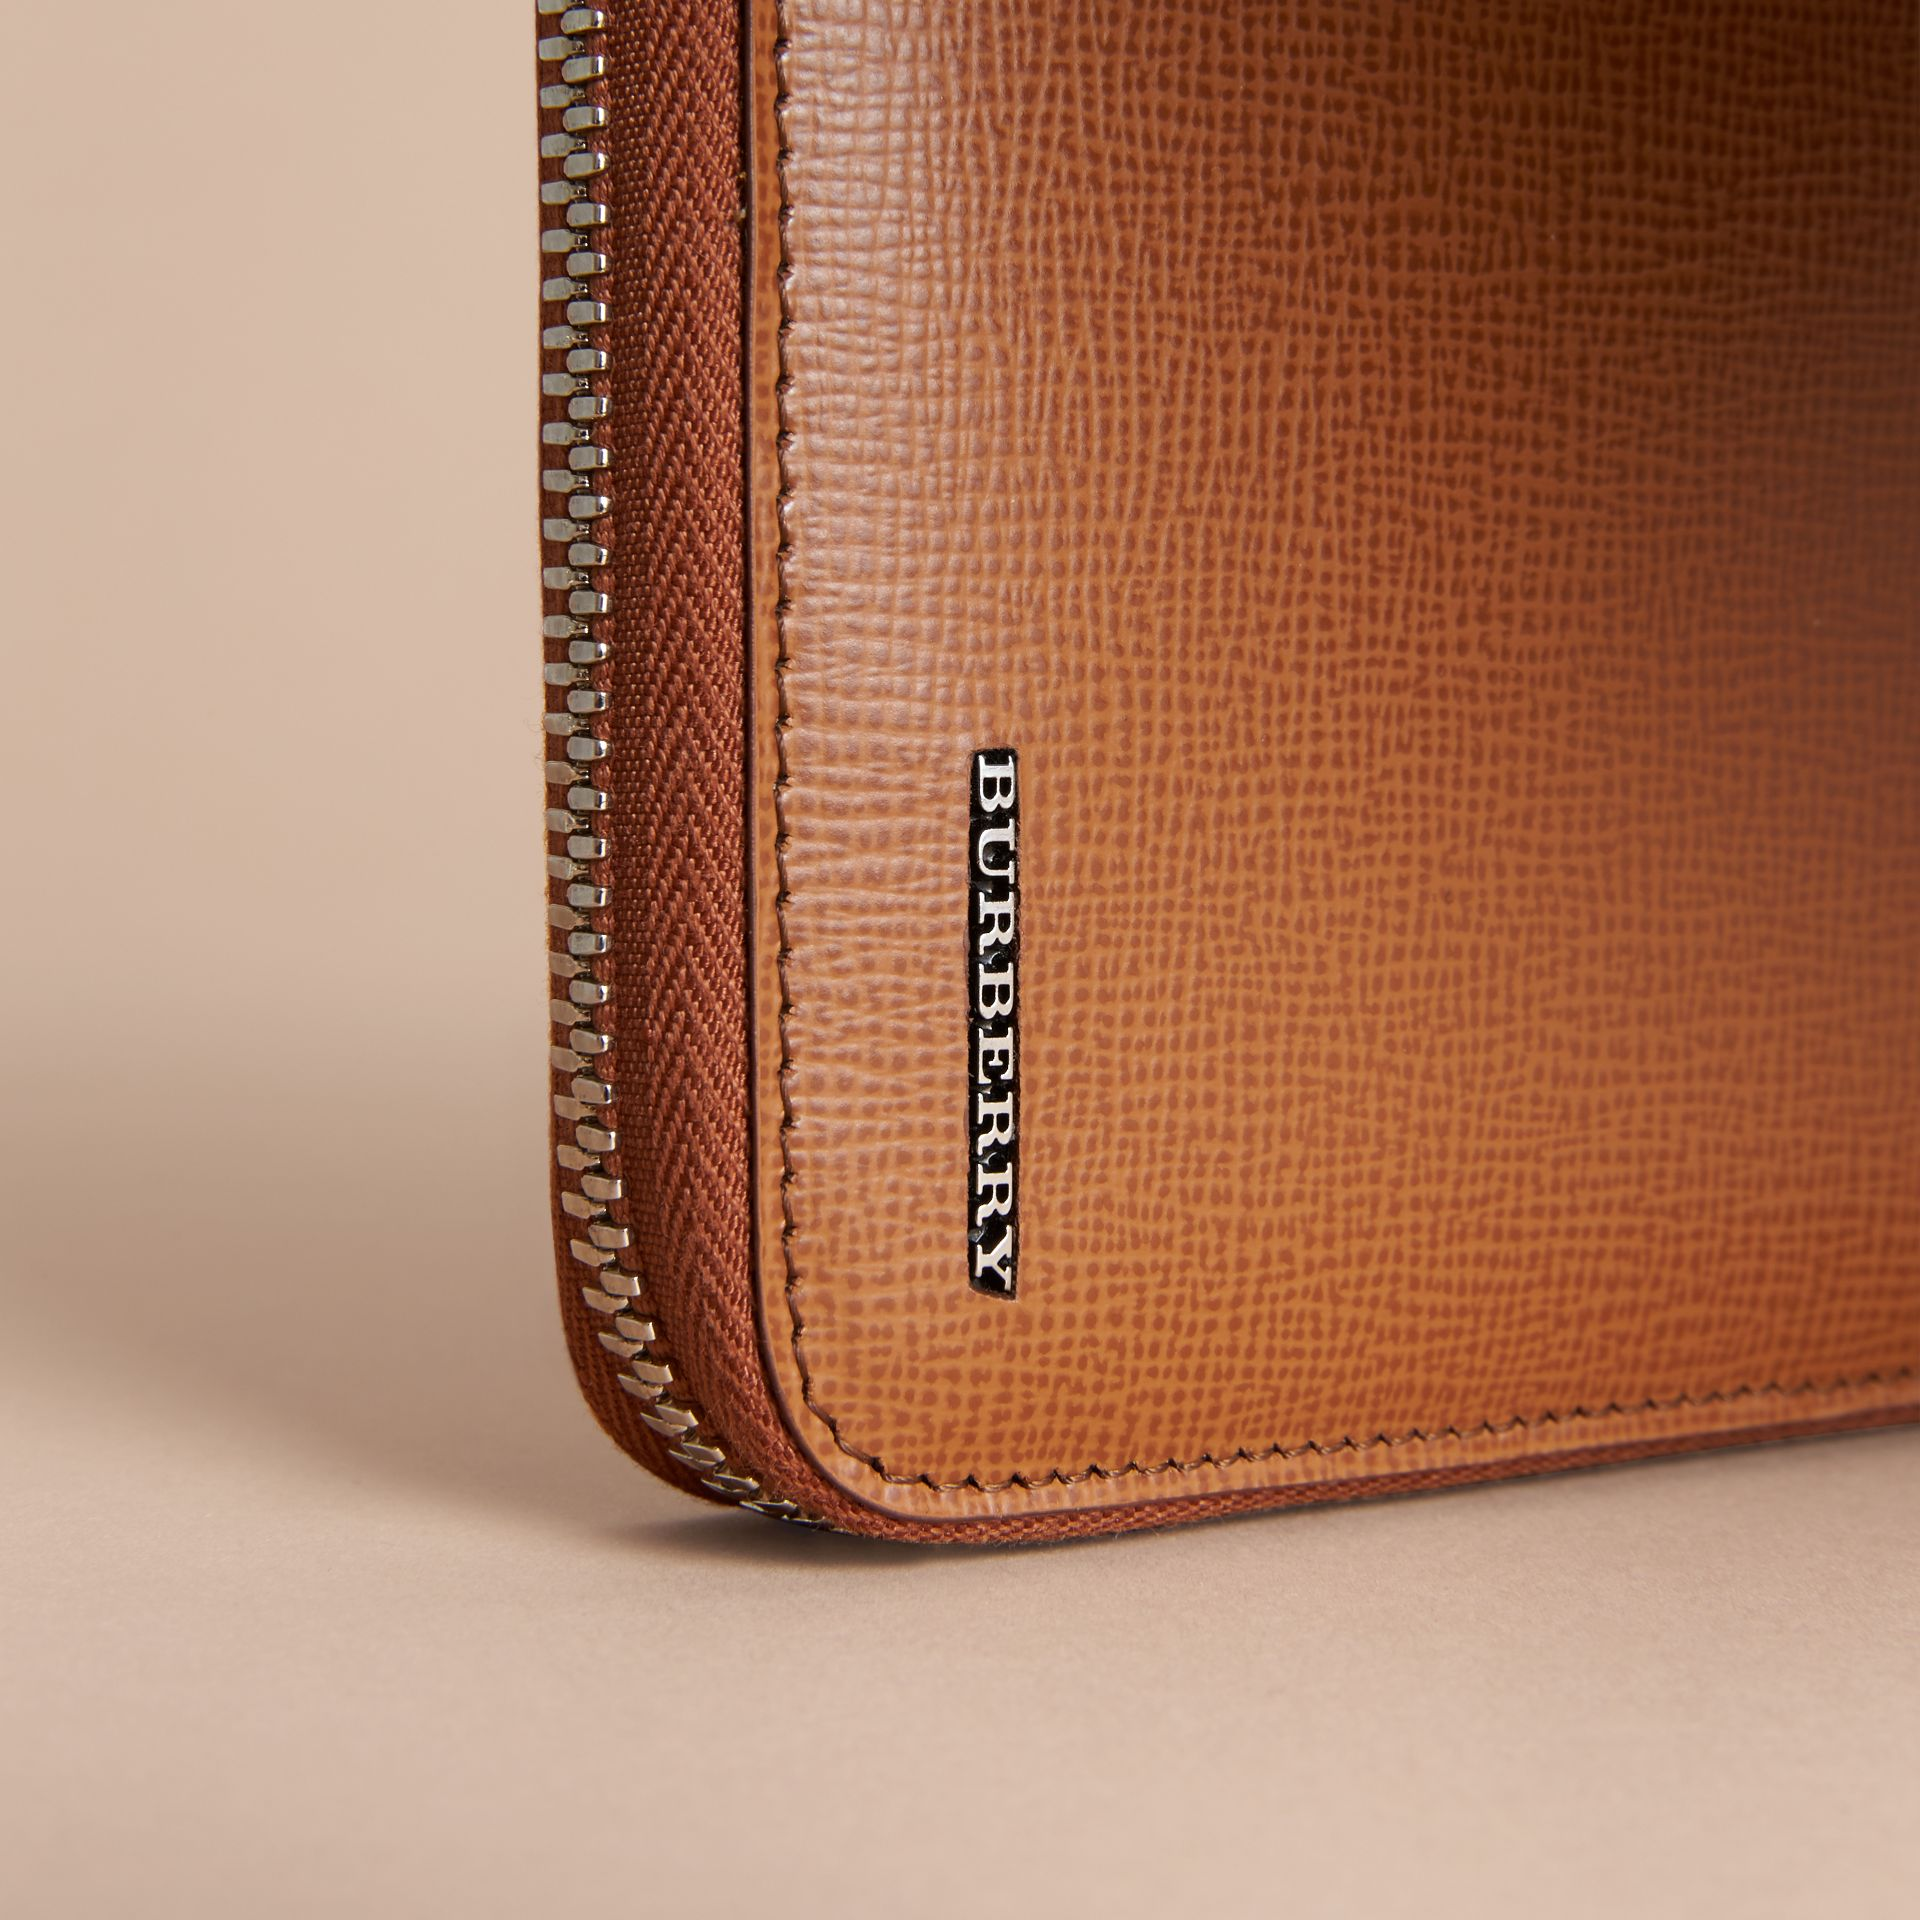 London Leather Ziparound Wallet in Tan | Burberry Australia - gallery image 5